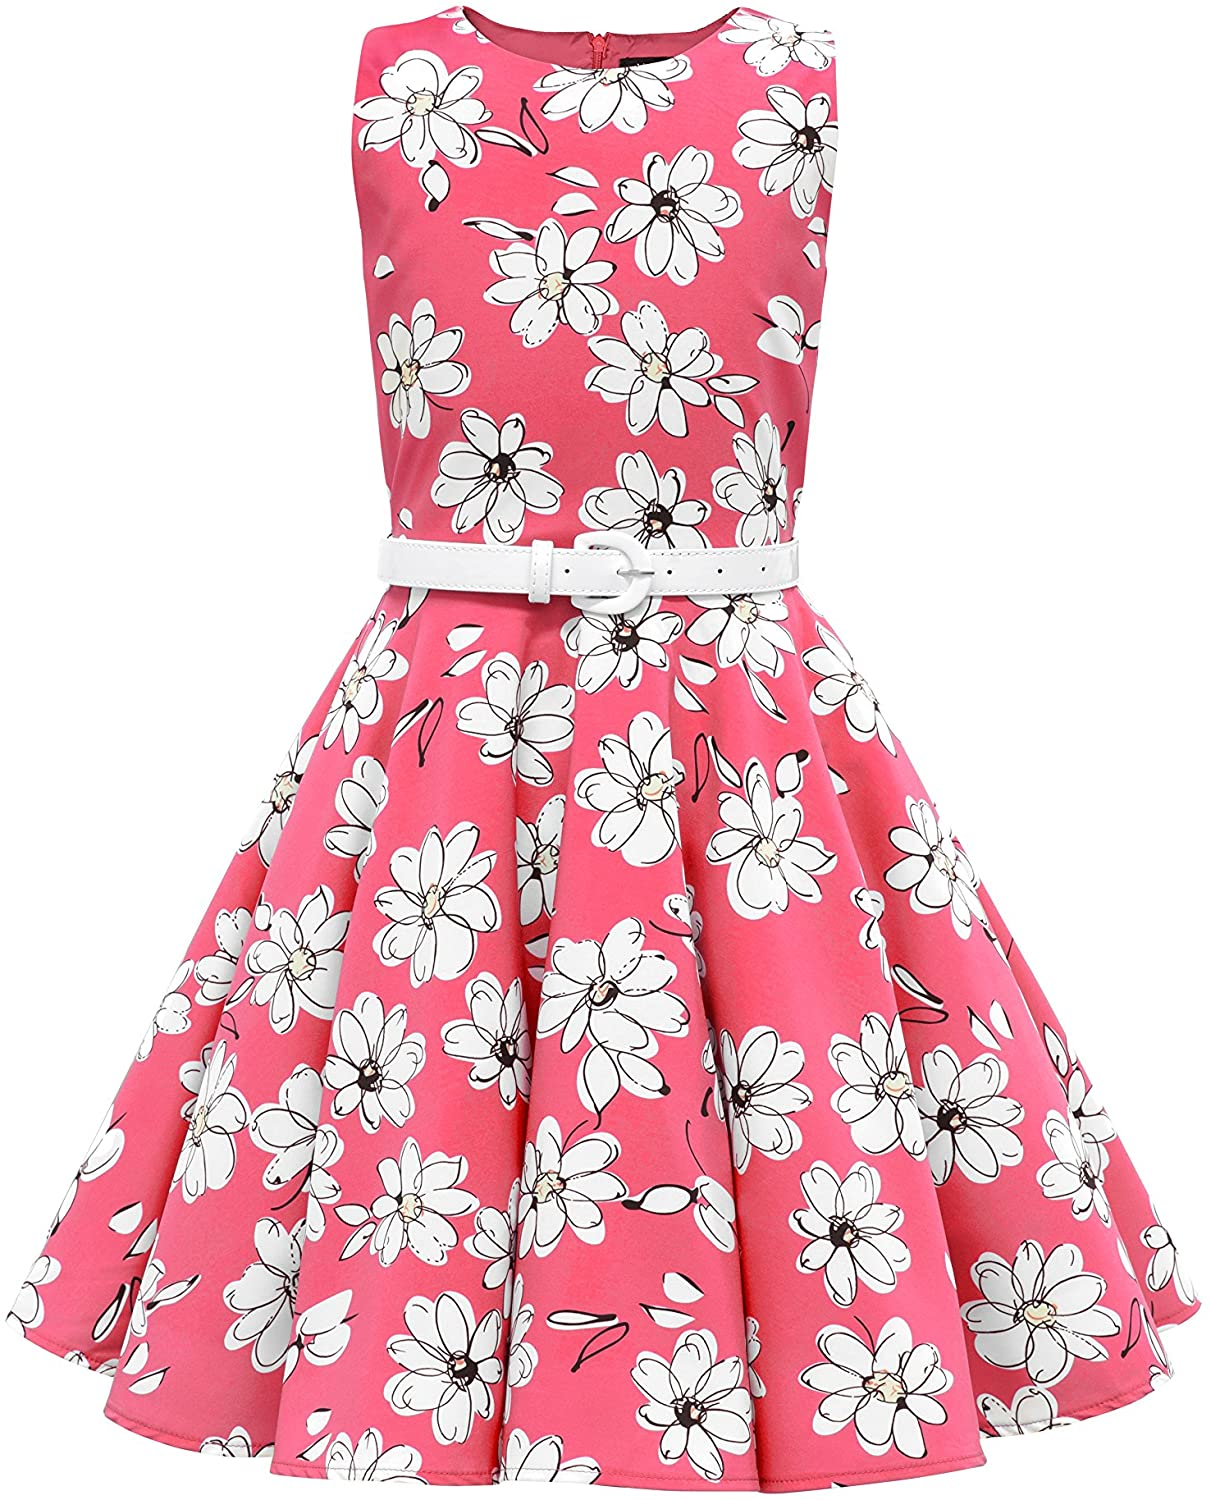 BlackButterfly Kids 'Audrey' Vintage Daisy 50's Girls Dress